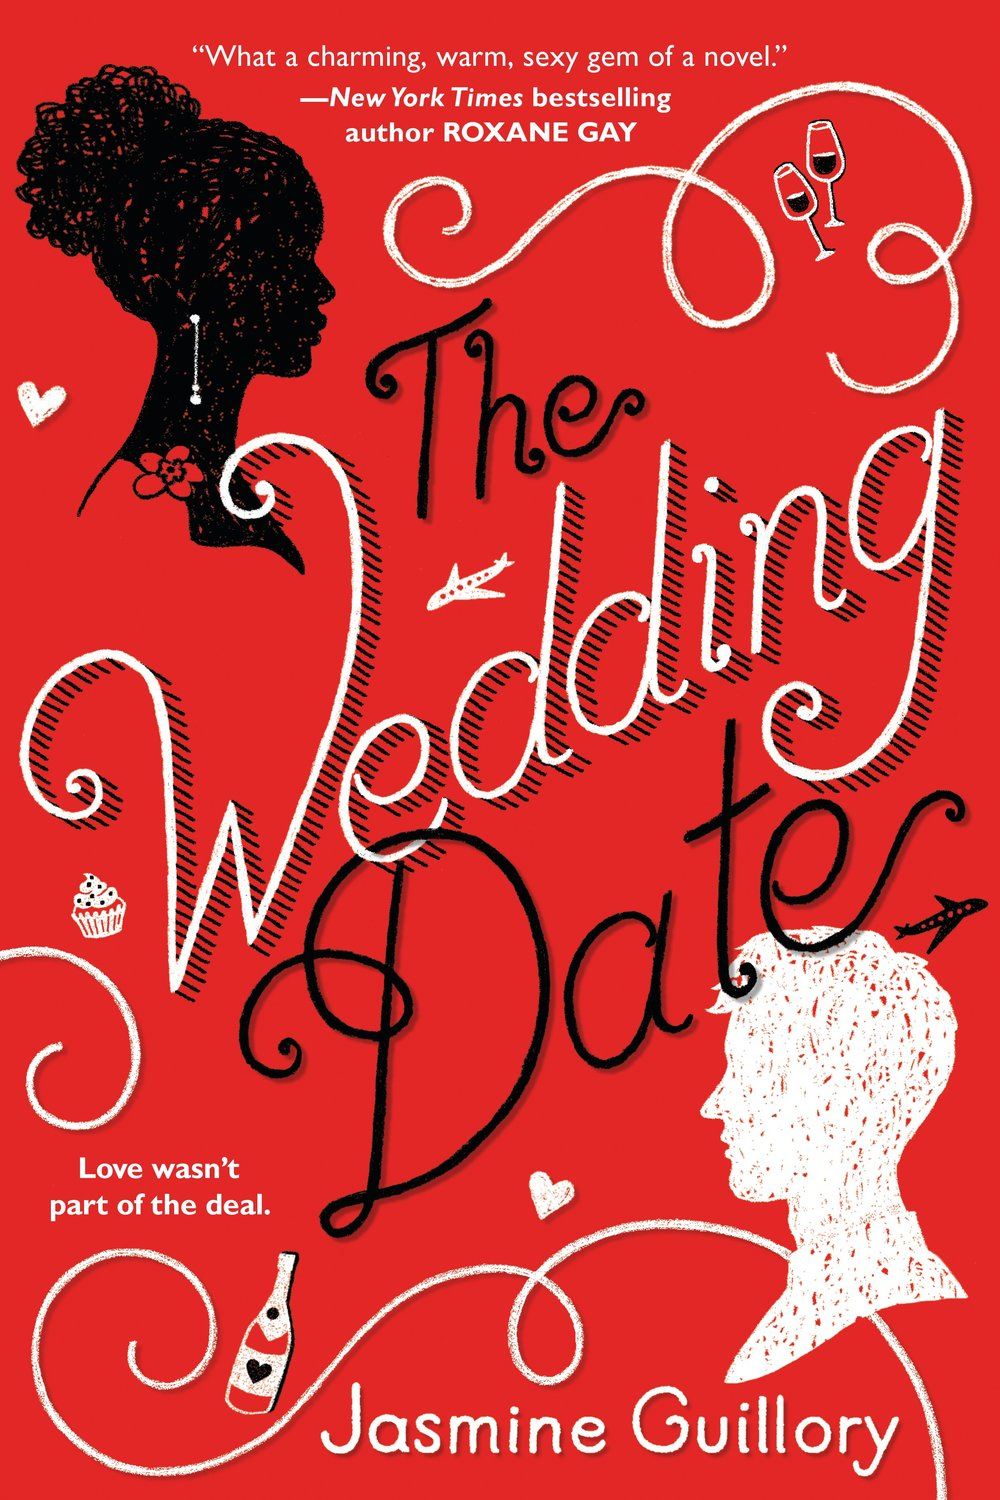 5 Books to Read About Weddings and Marriage